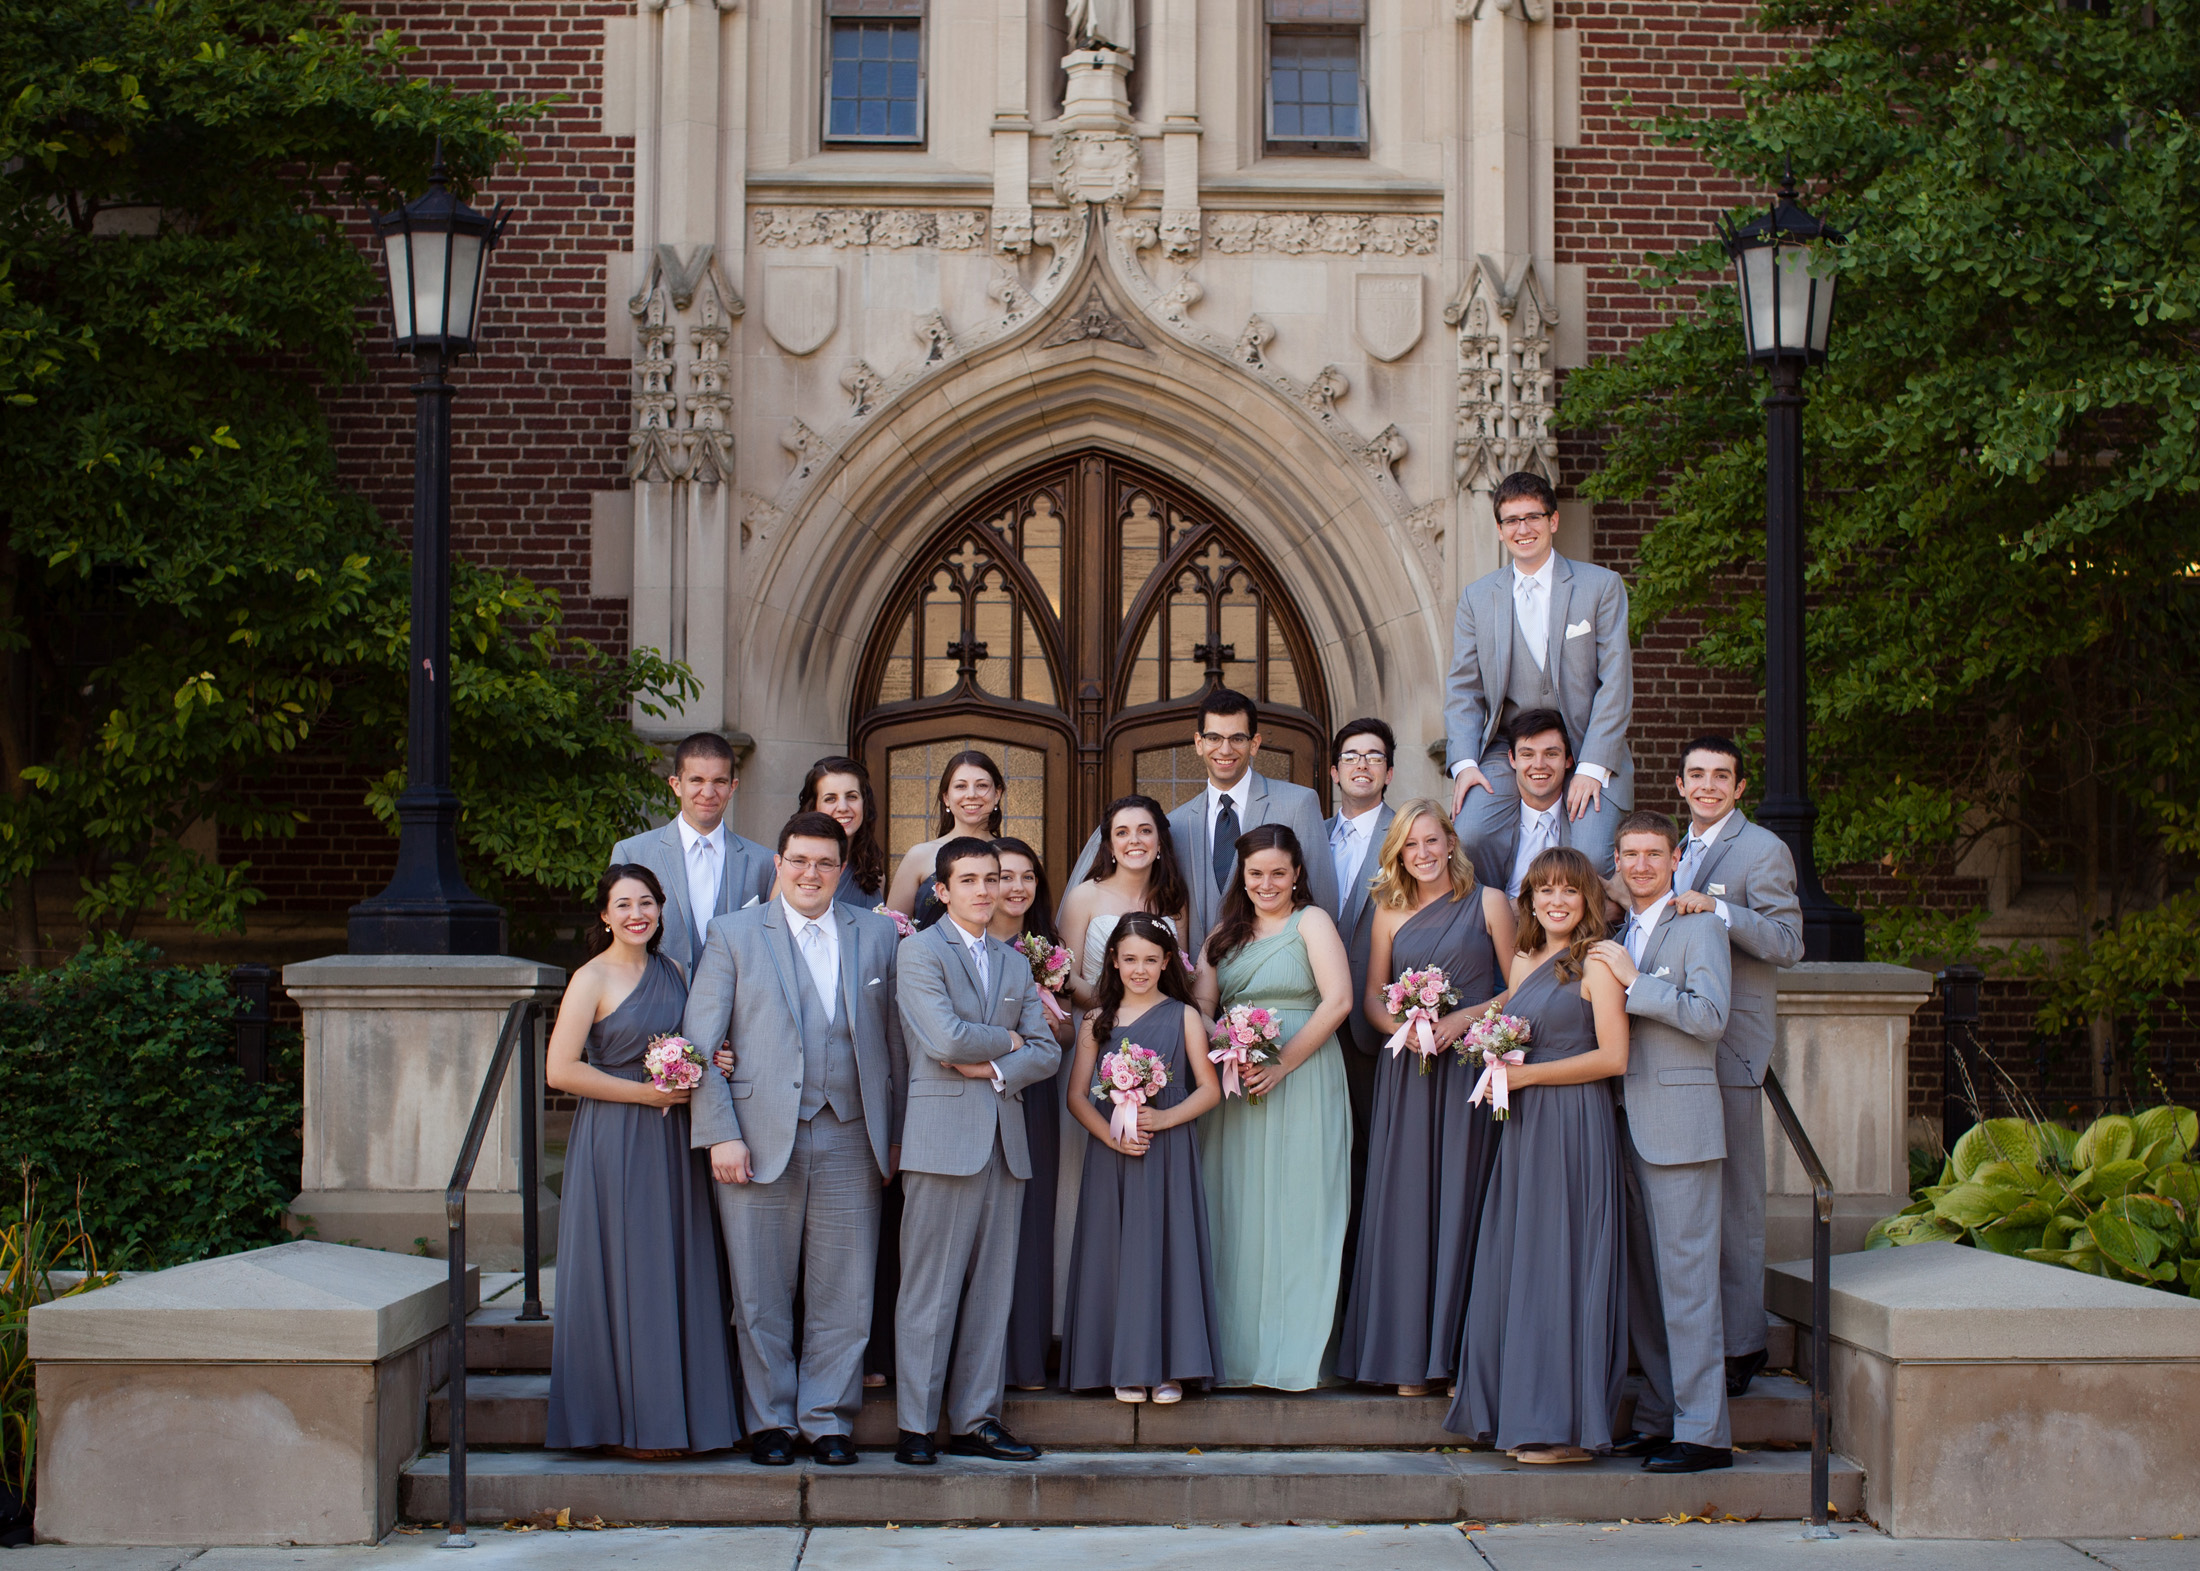 UofM_weddings_hull_melanie_reyes_032